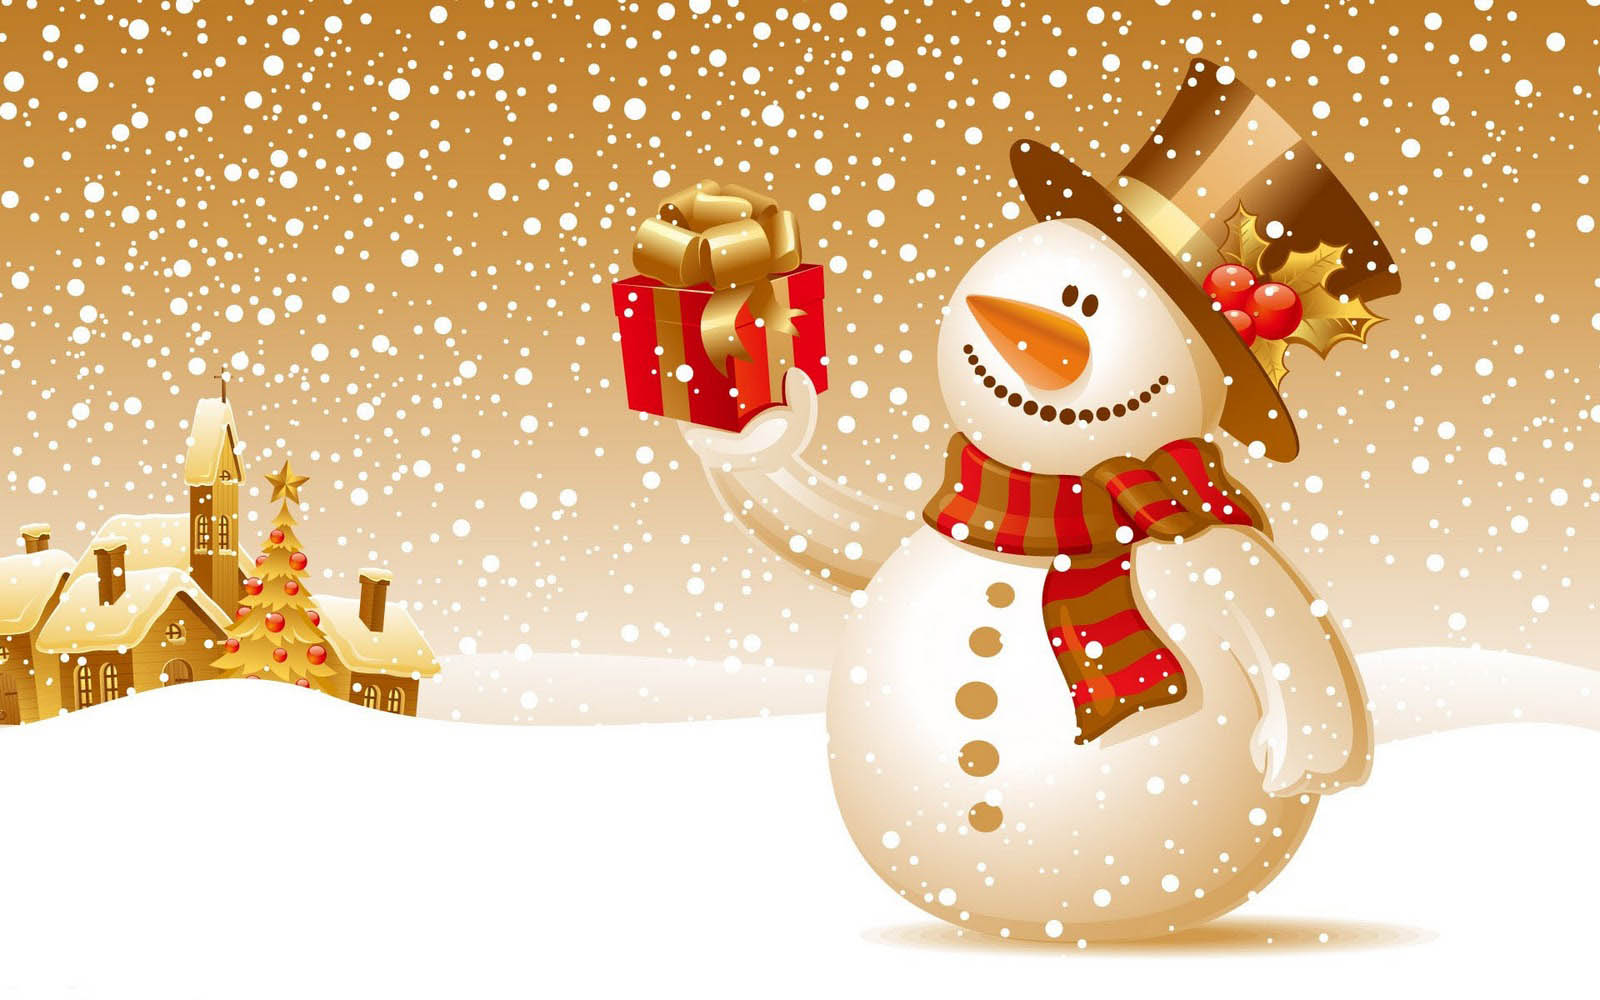 Christmas Snowman Wallpapers High Quality Download Free